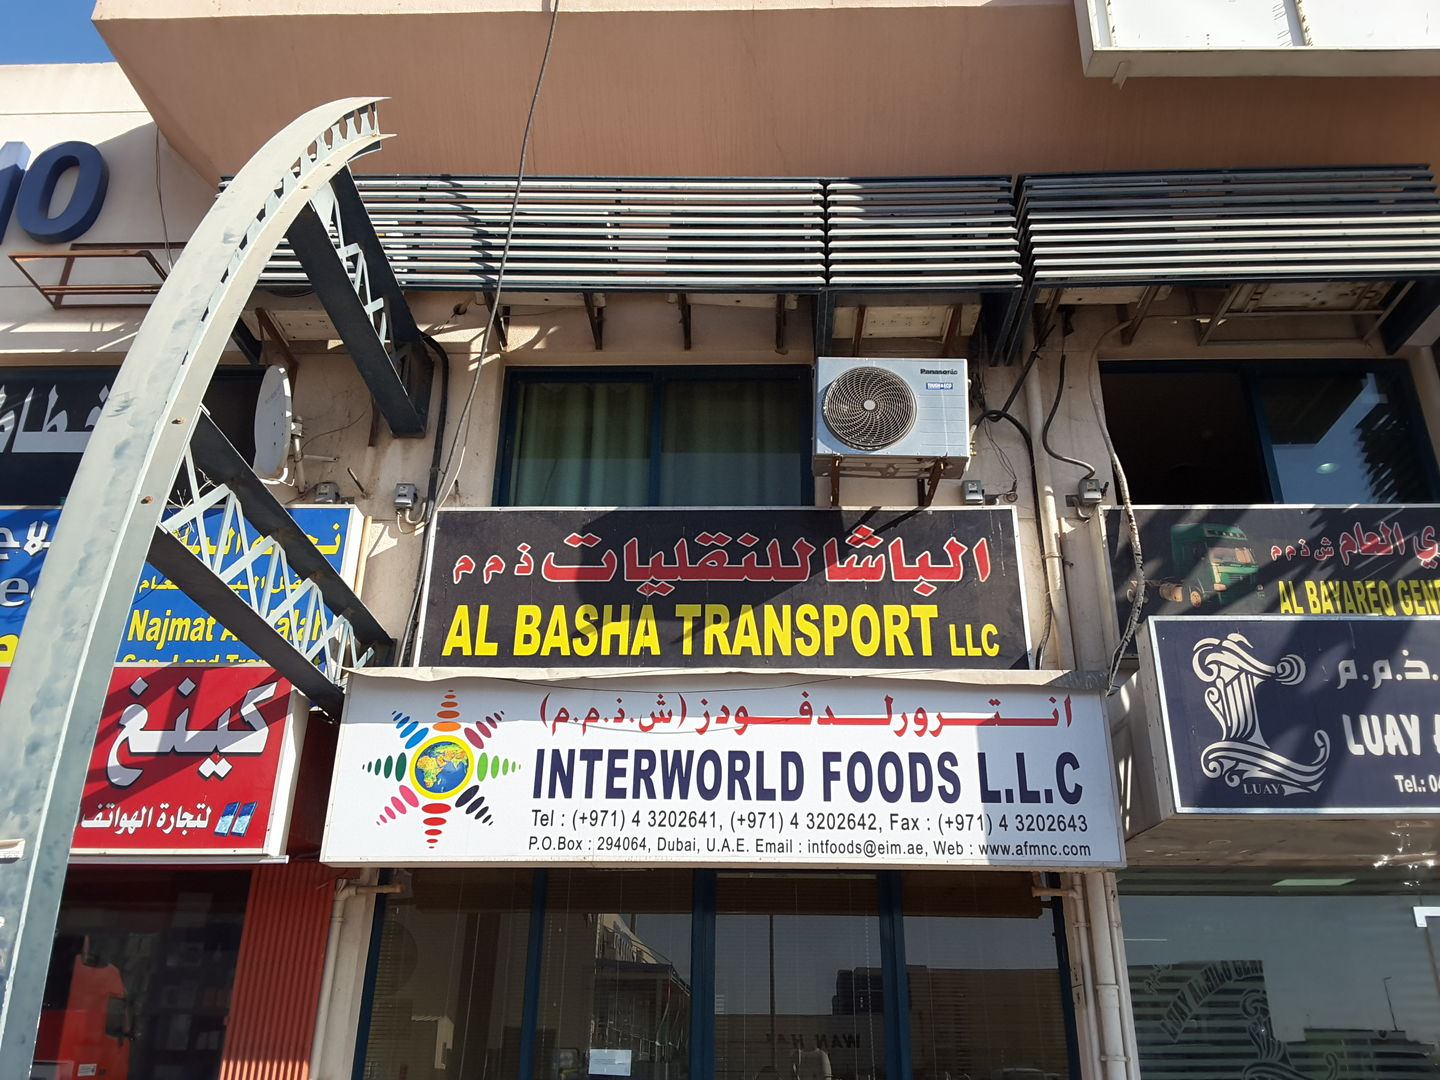 HiDubai-business-interworld-foods-b2b-services-food-stuff-trading-ras-al-khor-industrial-3-dubai-2